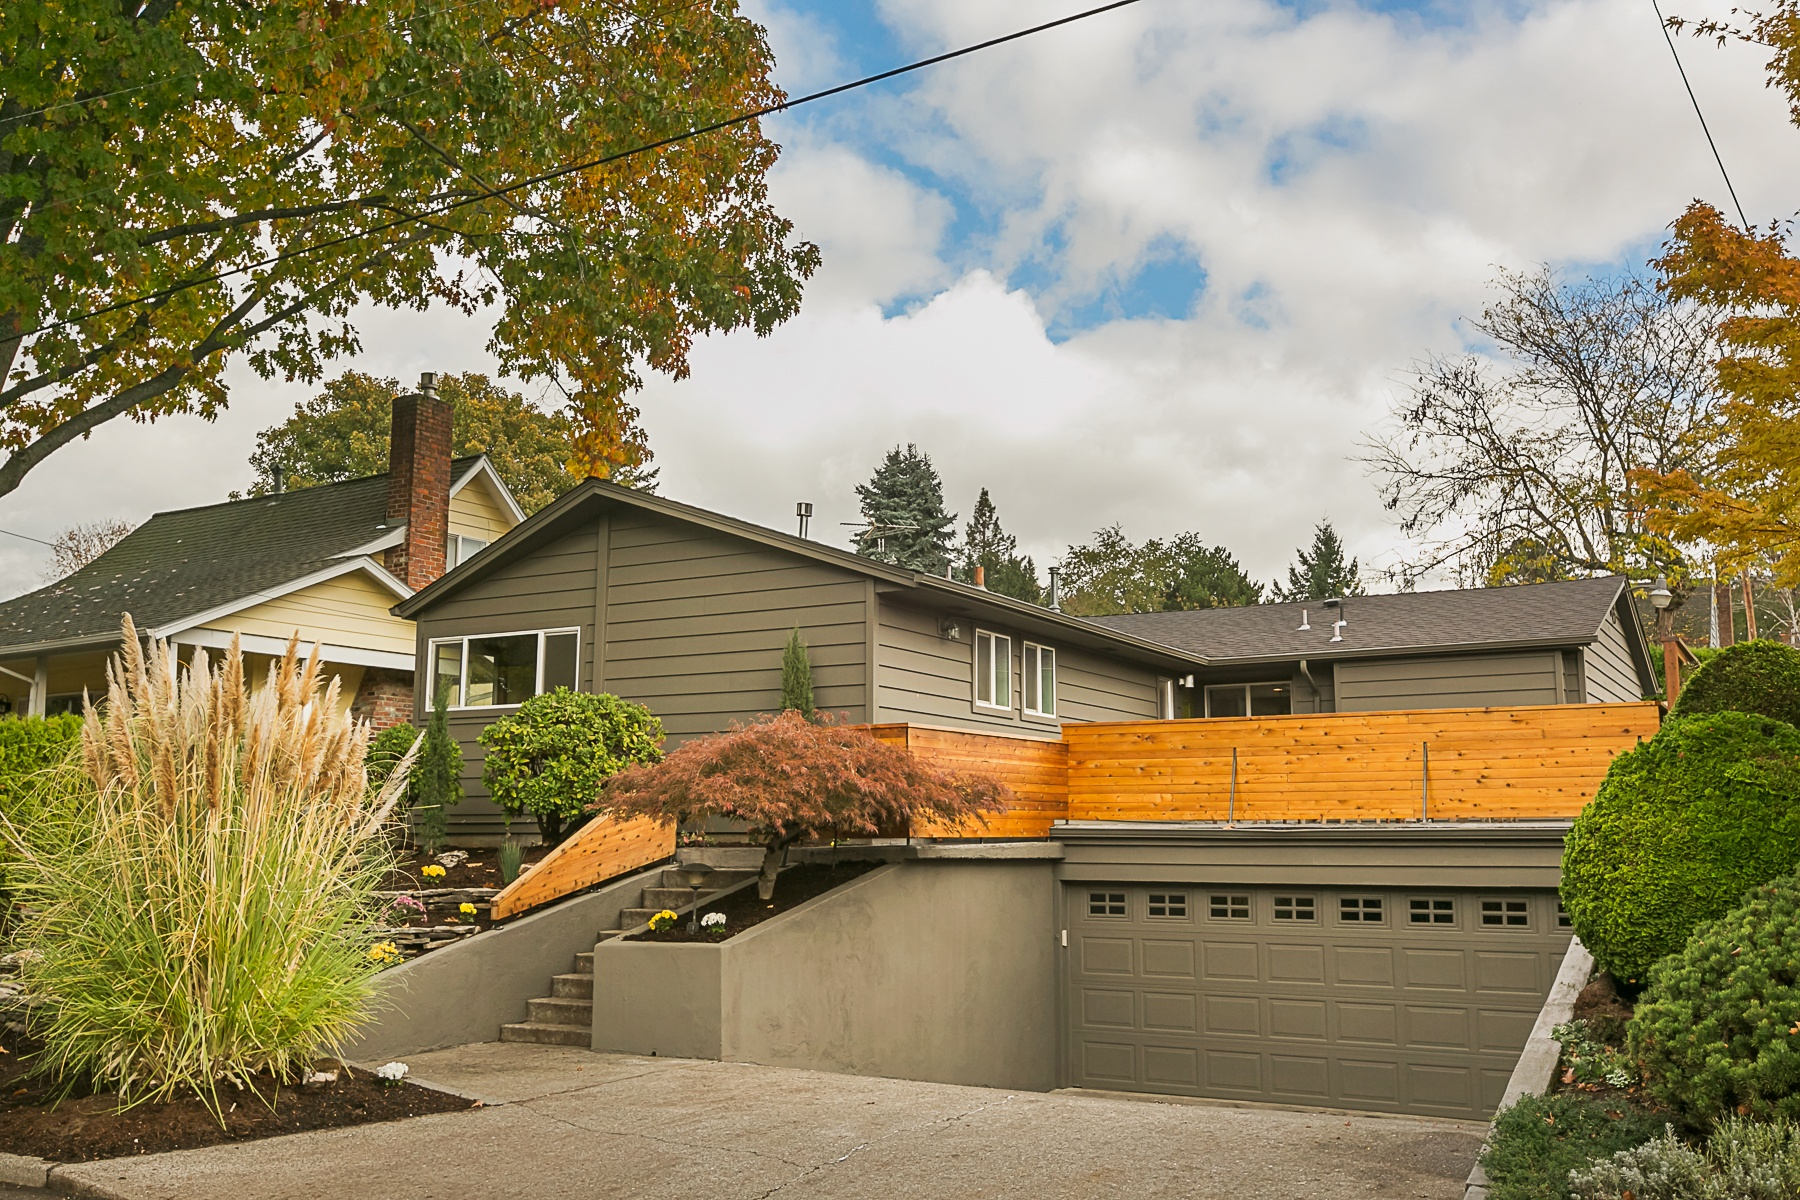 Single Family Home for Sale at 5100 SE 36TH PL, PORTLAND, OR Portland, Oregon 97202 United States